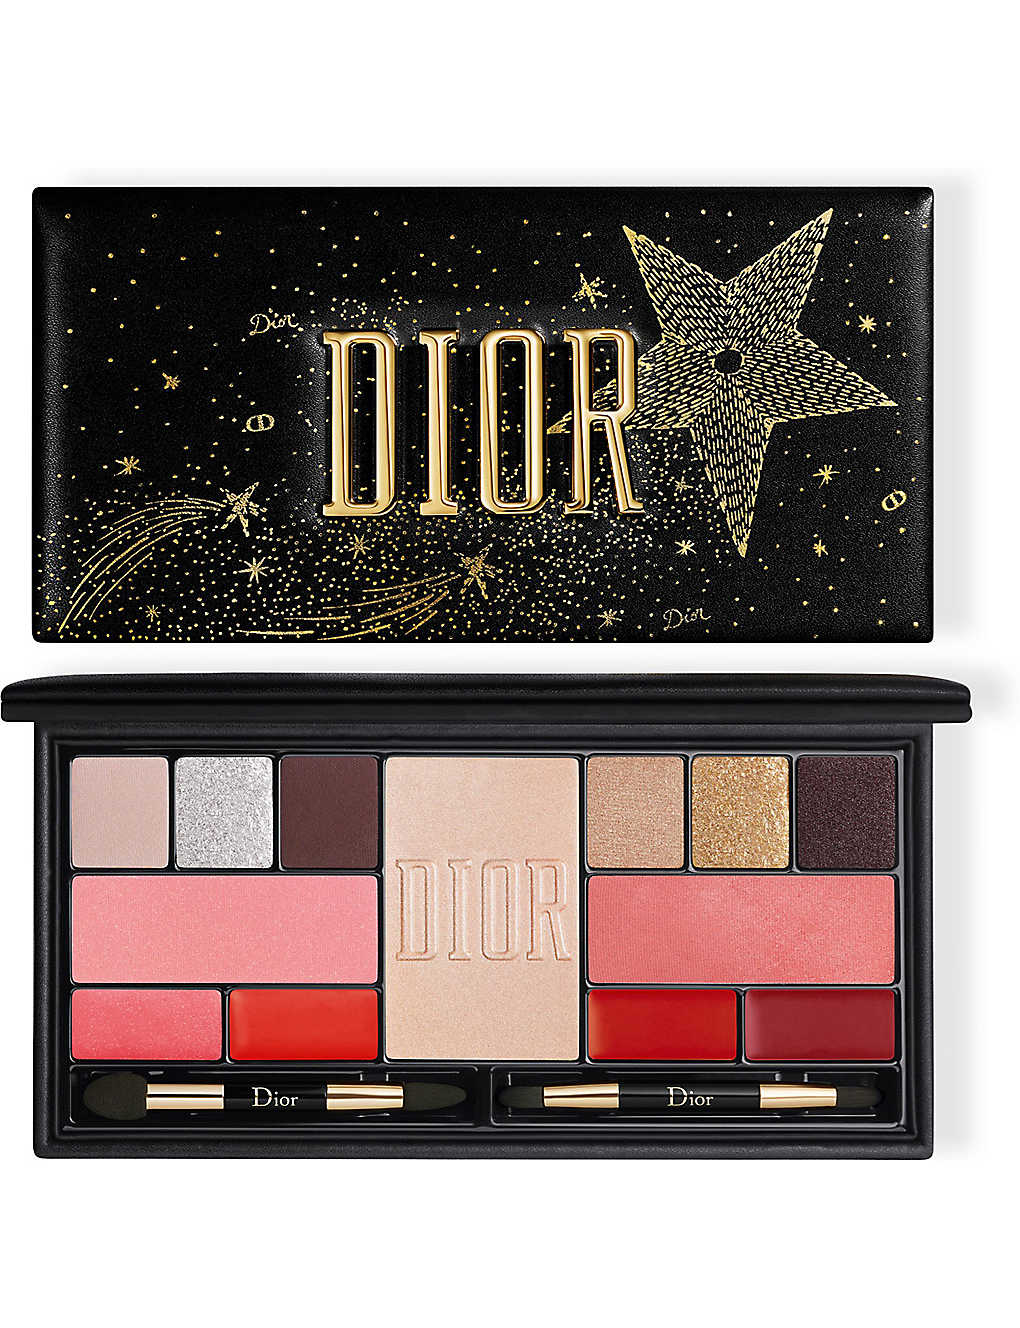 DIOR: Dior Sparkling Couture Multi-Use Makeup Palette